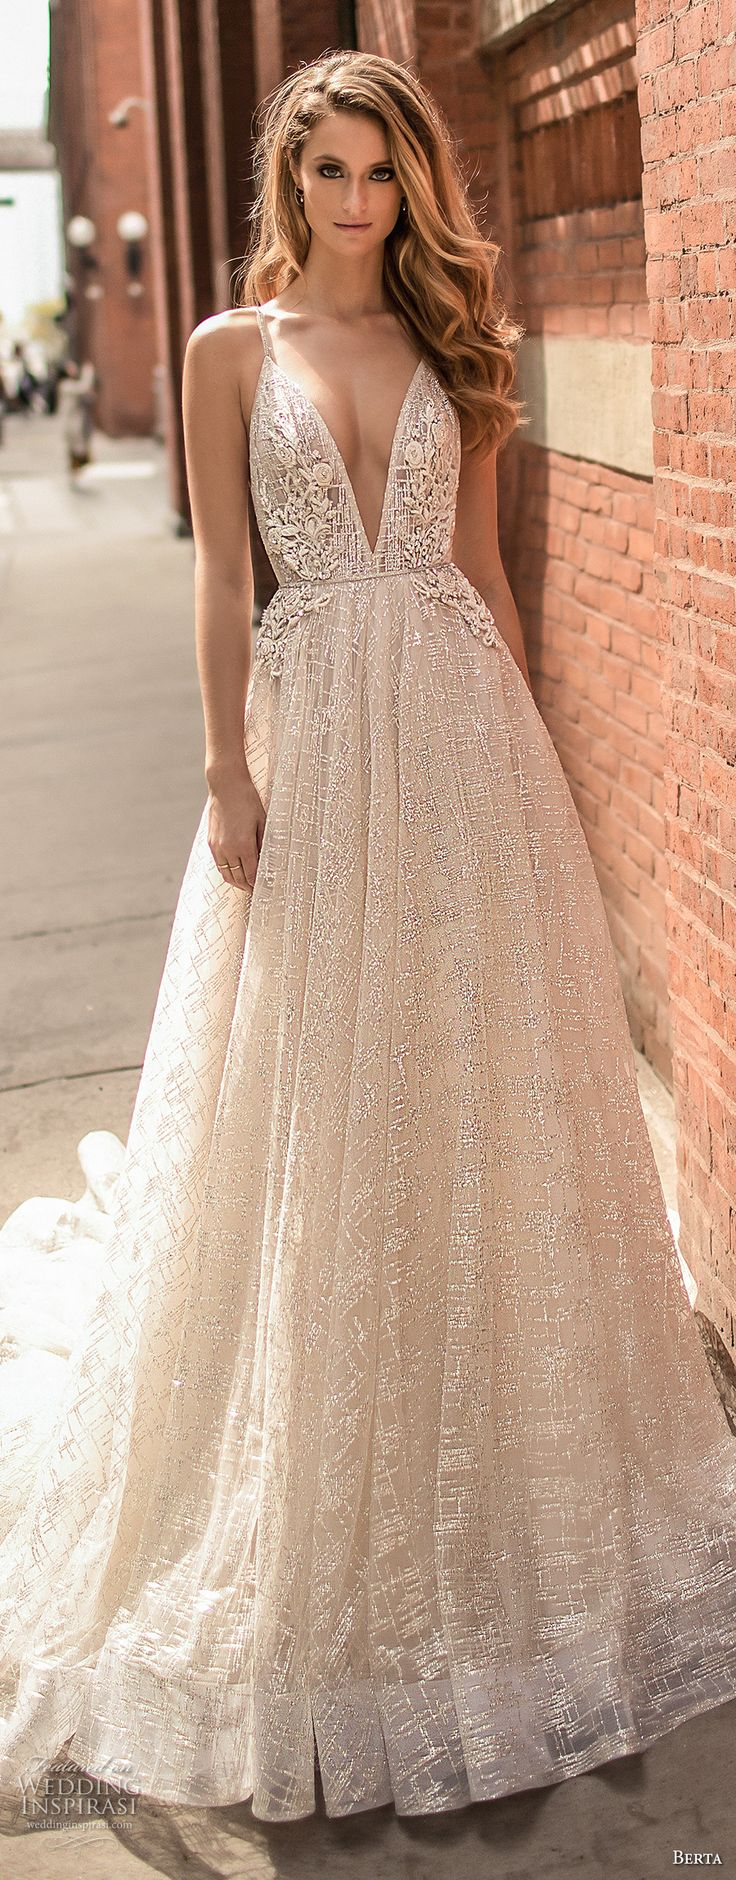 berta spring 2018 bridal spaghetti strap deep v neck full embellishment sexy romantic a  line wedding dress open back chapel train (2) mv -- Berta Spring 2018 Wedding Dresses